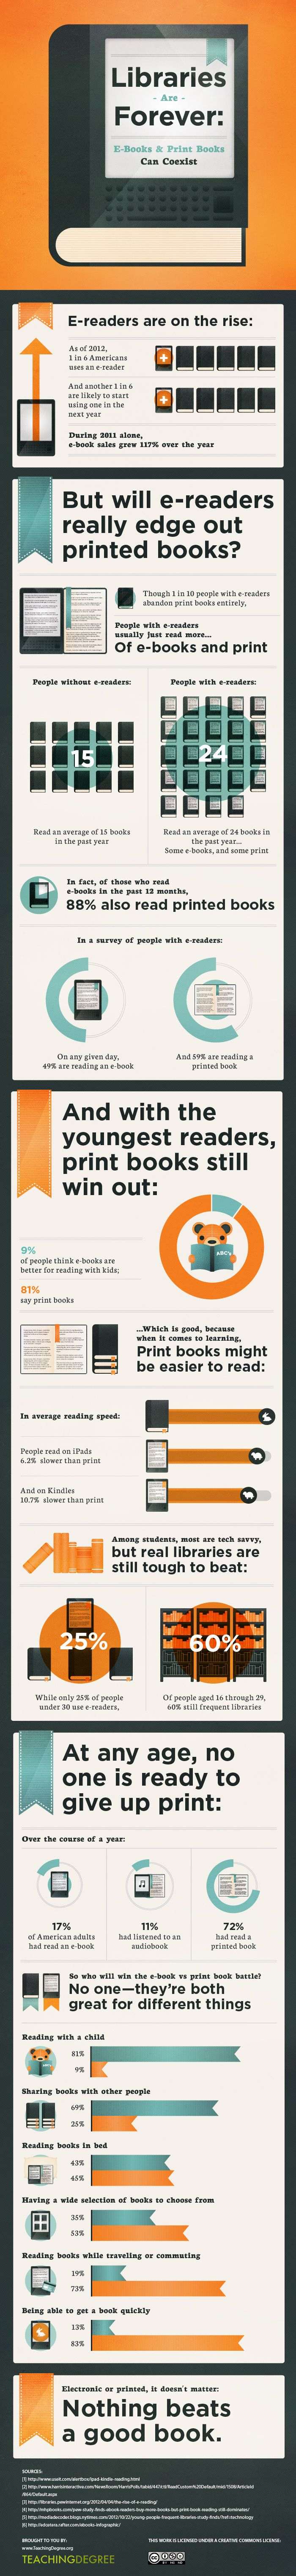 Ebooks vs Print Info